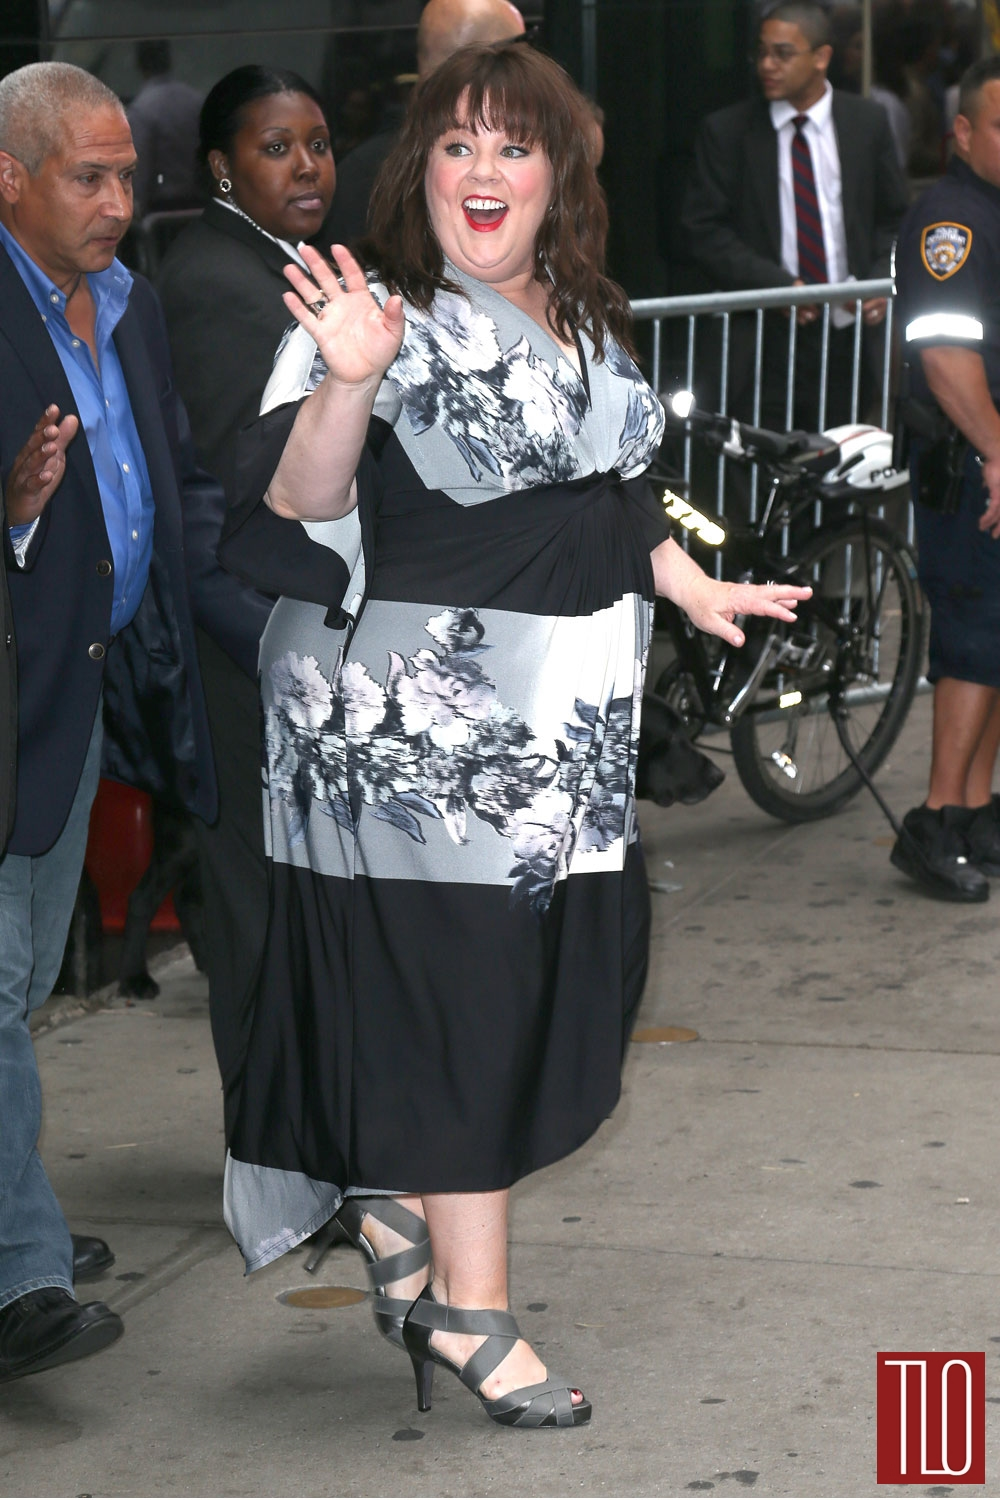 Melissa-McCarthy-Tammy-Movie-Premiere-Good-Morning-America-Tom-Lorenzo-Site-TLO (1)